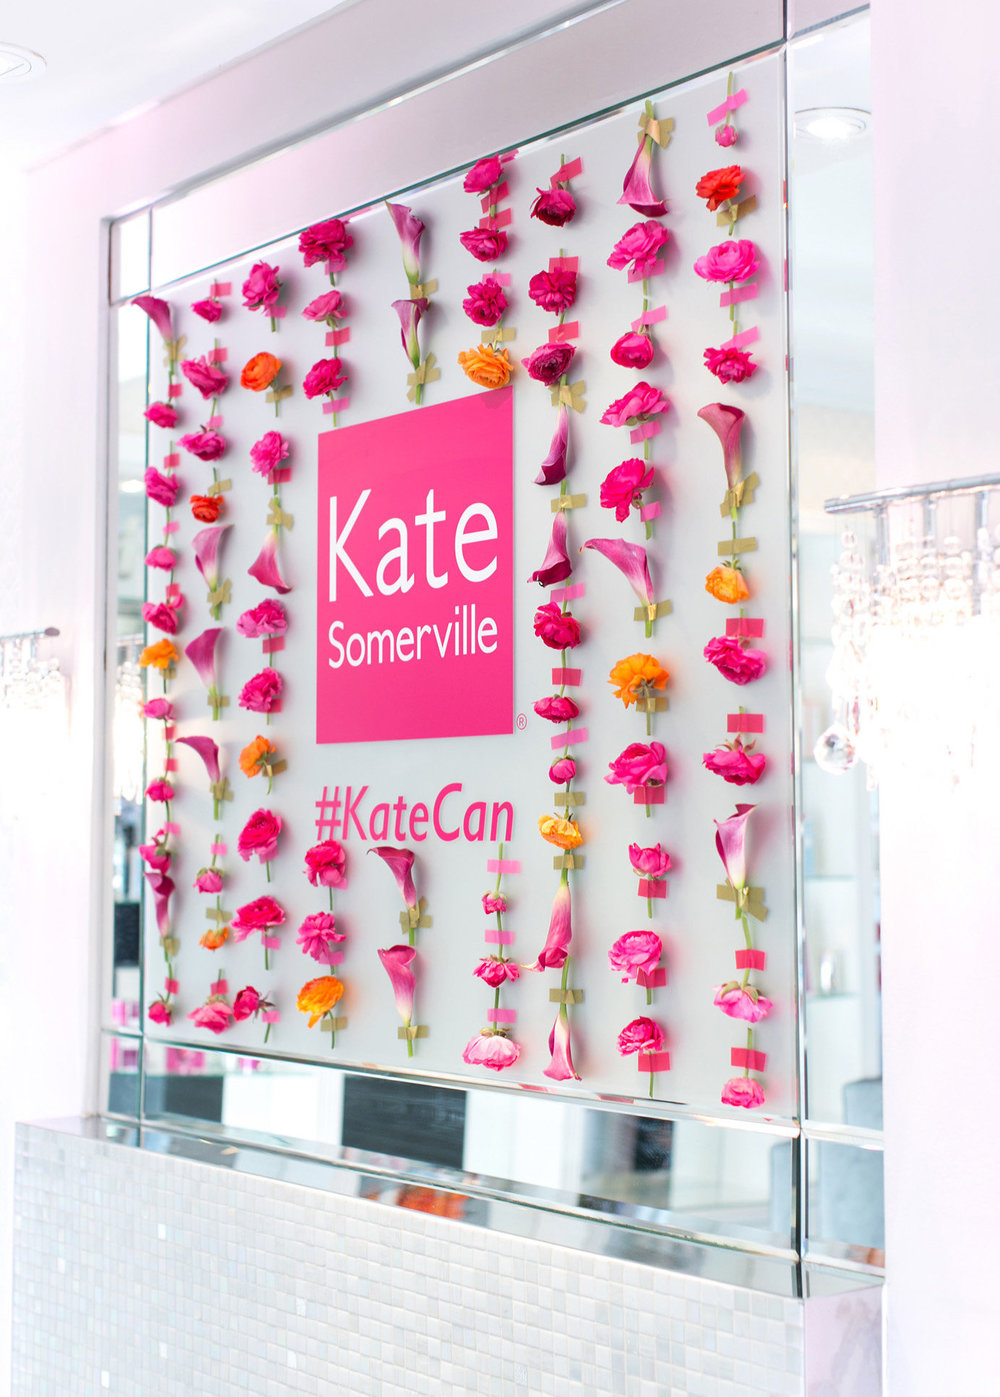 KATE SOMERVILLE #KATECAN EVENT